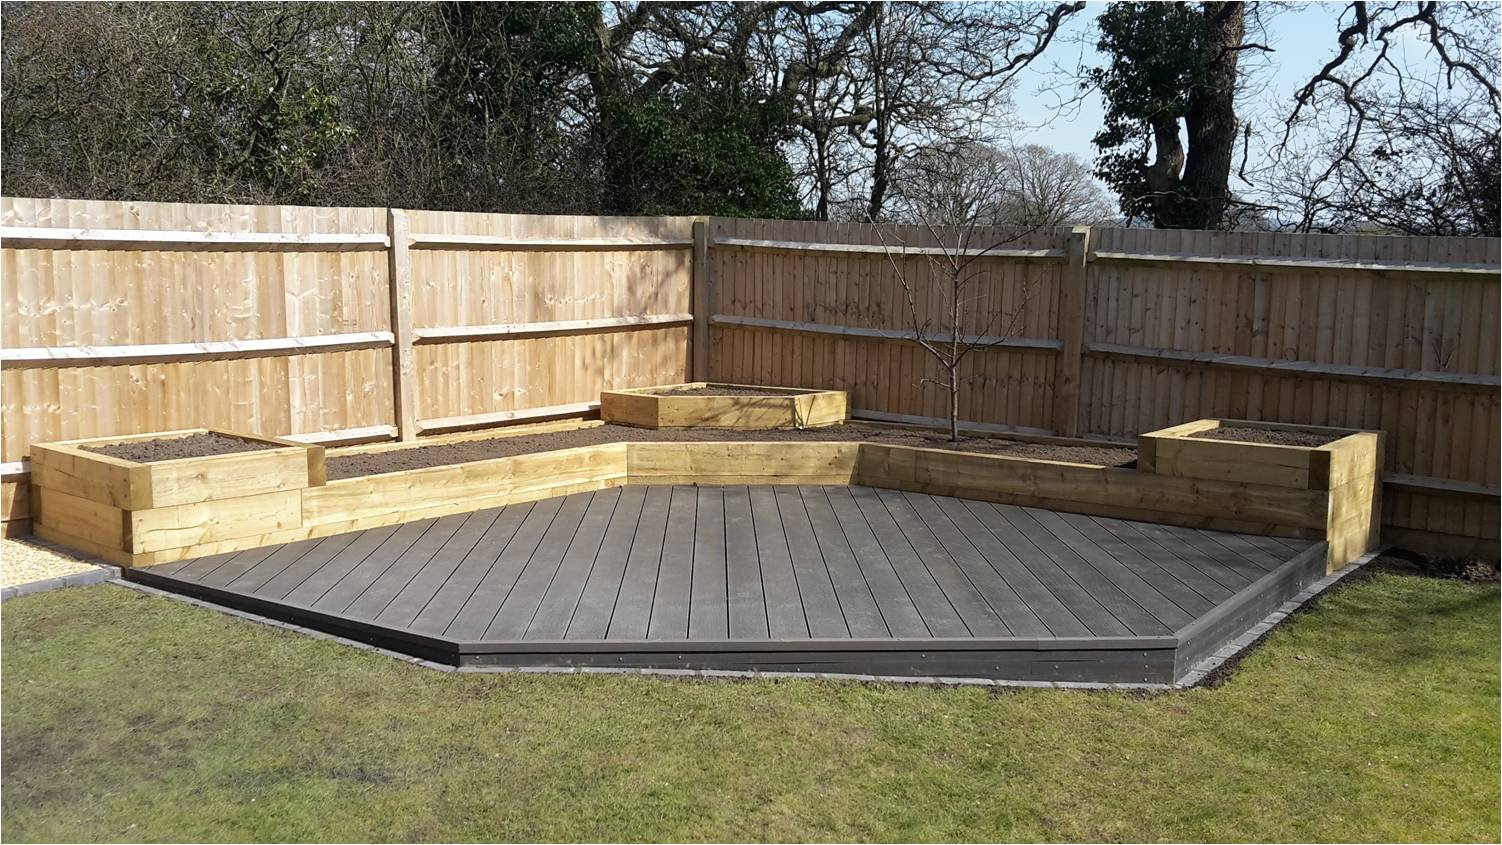 Sleepers decking rmw landscapesrmw landscapes for Garden pond design using sleepers